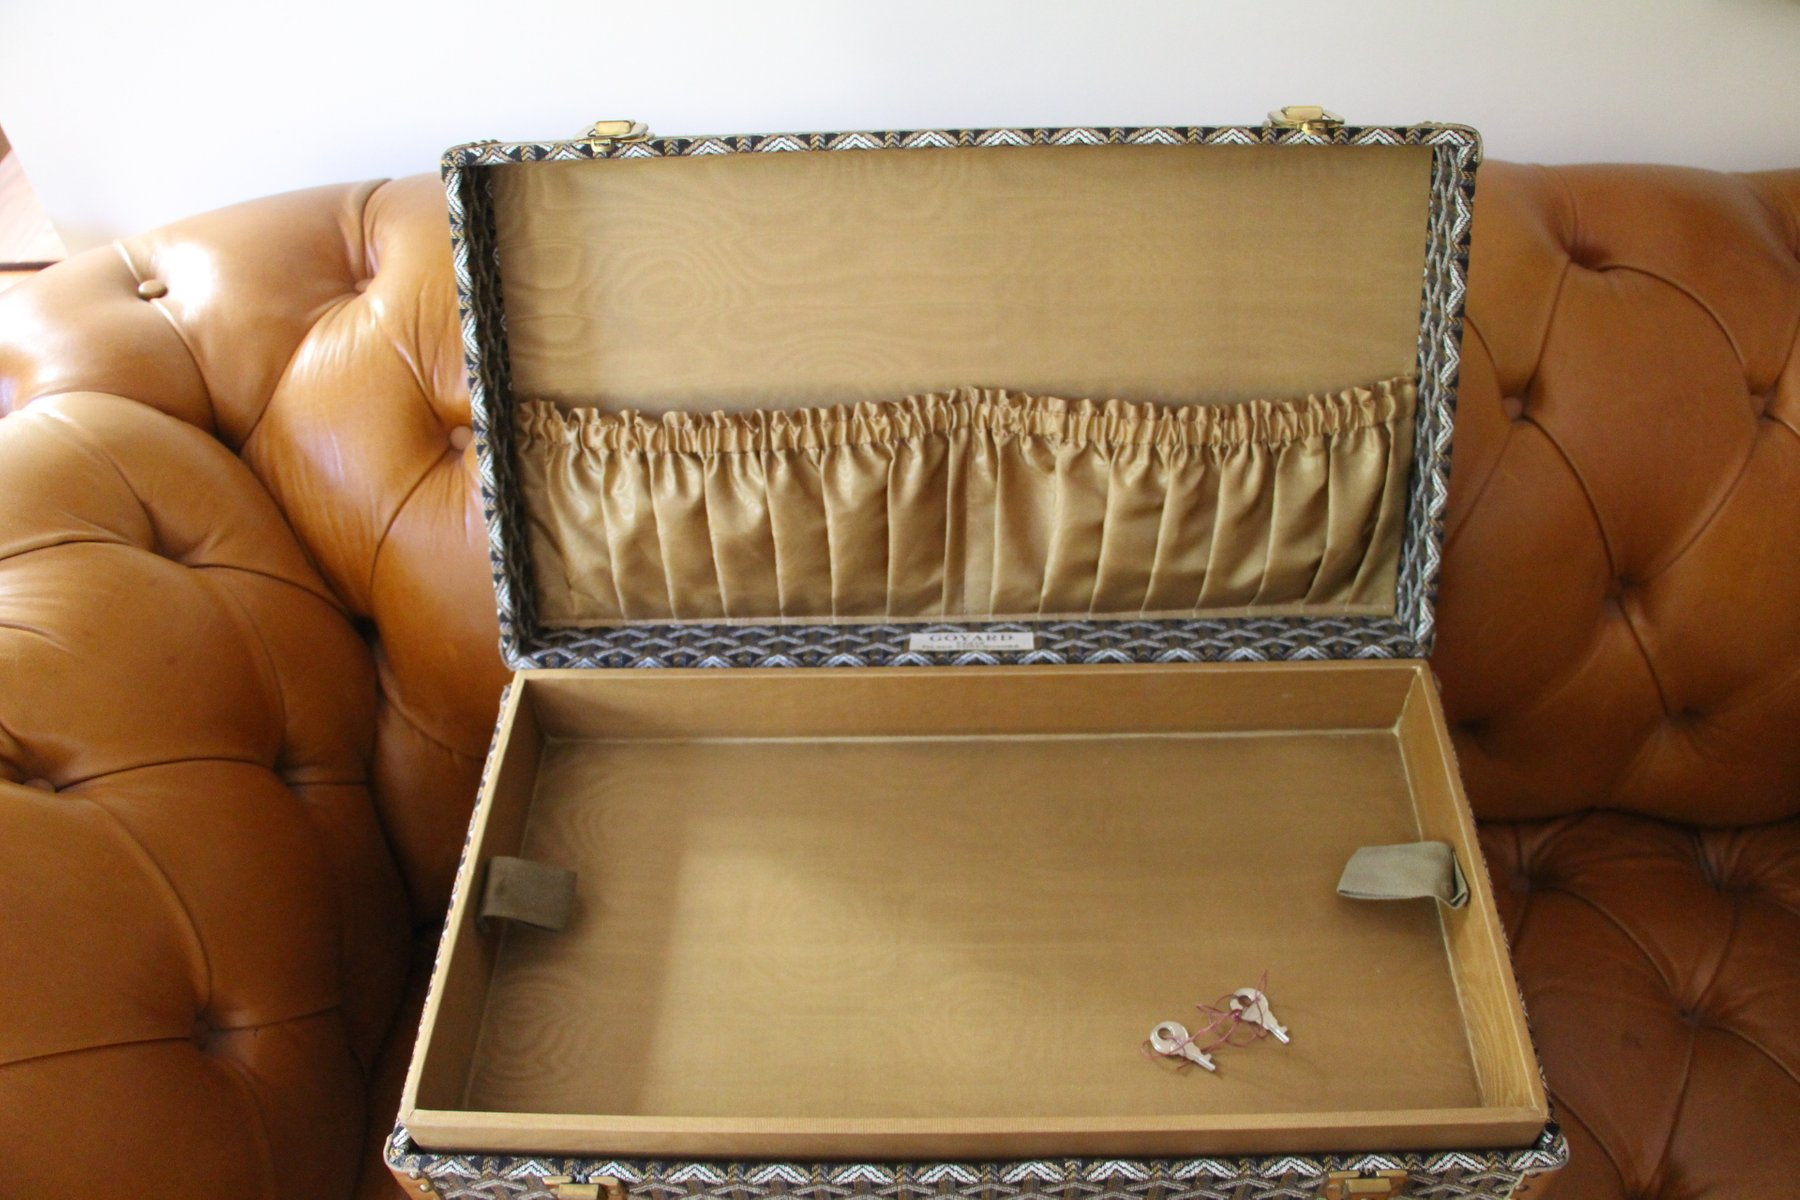 French Jewelry Case from Goyard 1960s for sale at Pamono